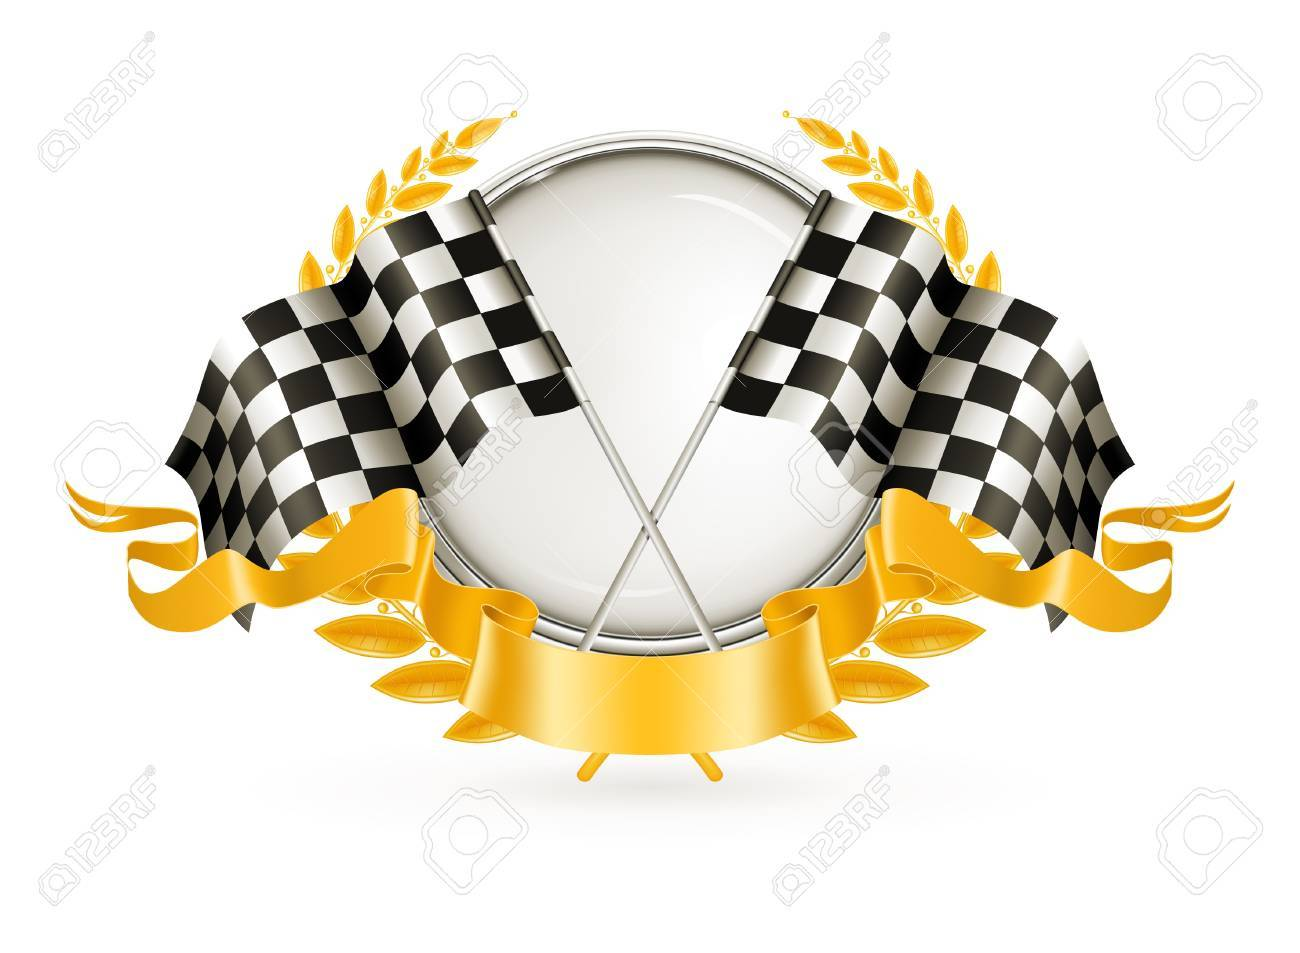 Silver Racing Emblem Stock Vector - 13696240